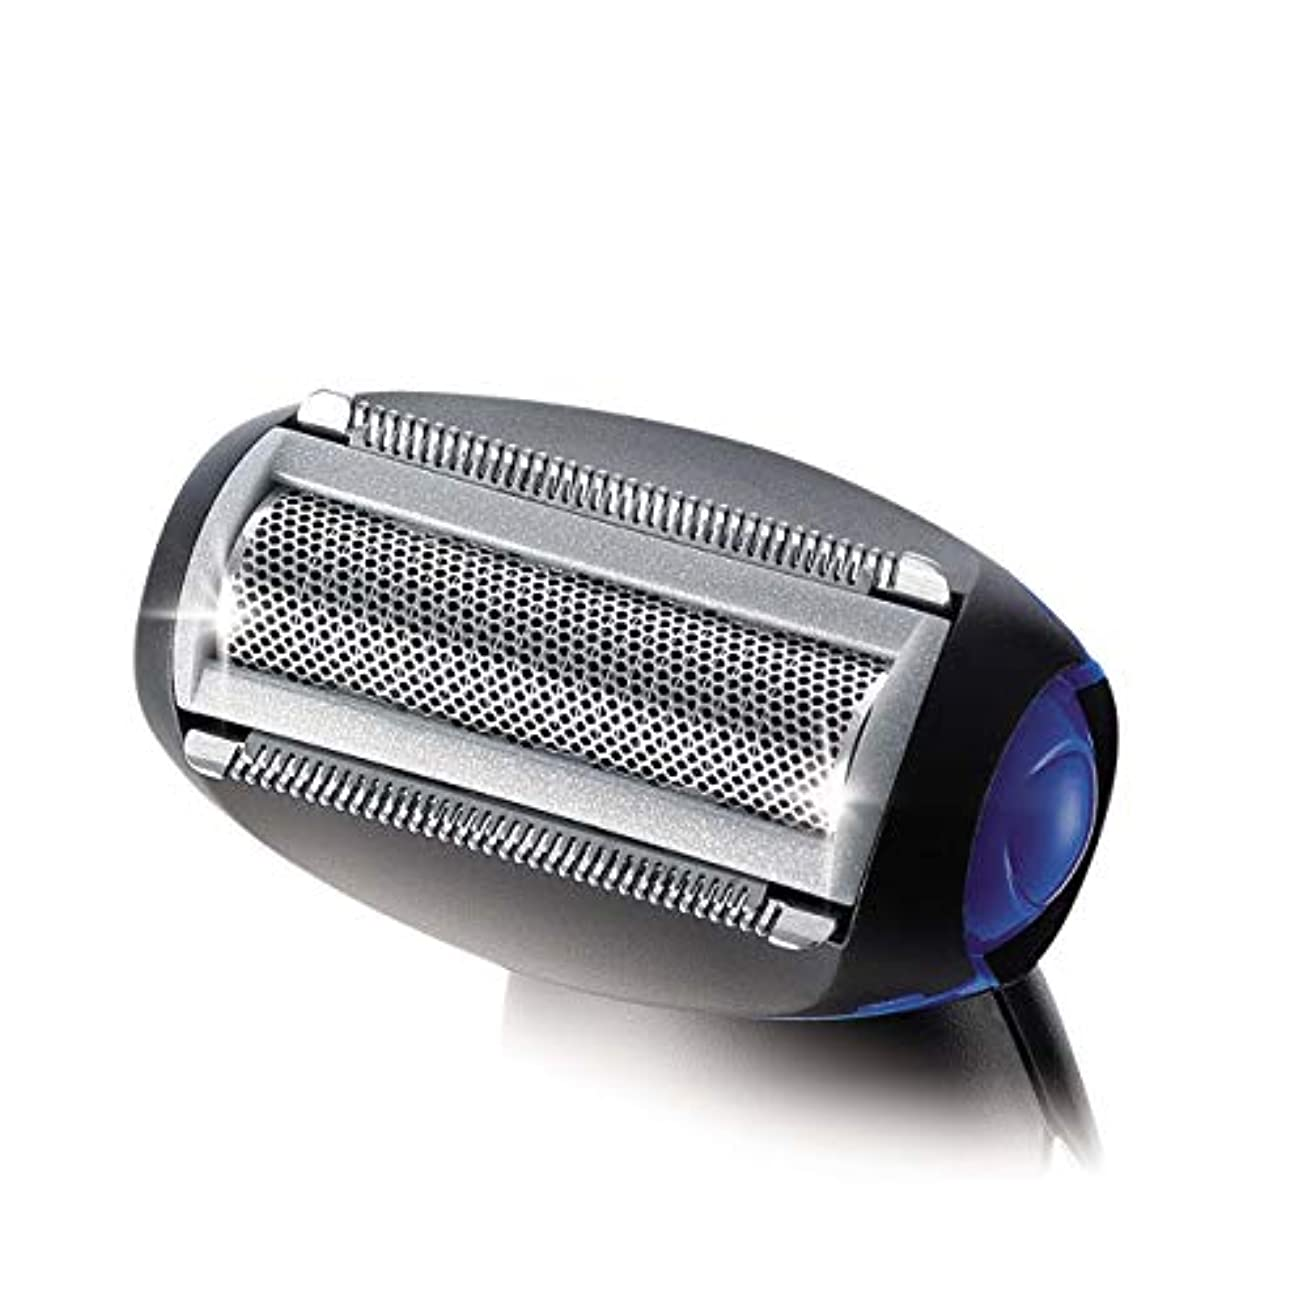 Philips Norelco Bodygroom Replacement Trimmer/Shaver Foil by Philips Norelco [並行輸入品]